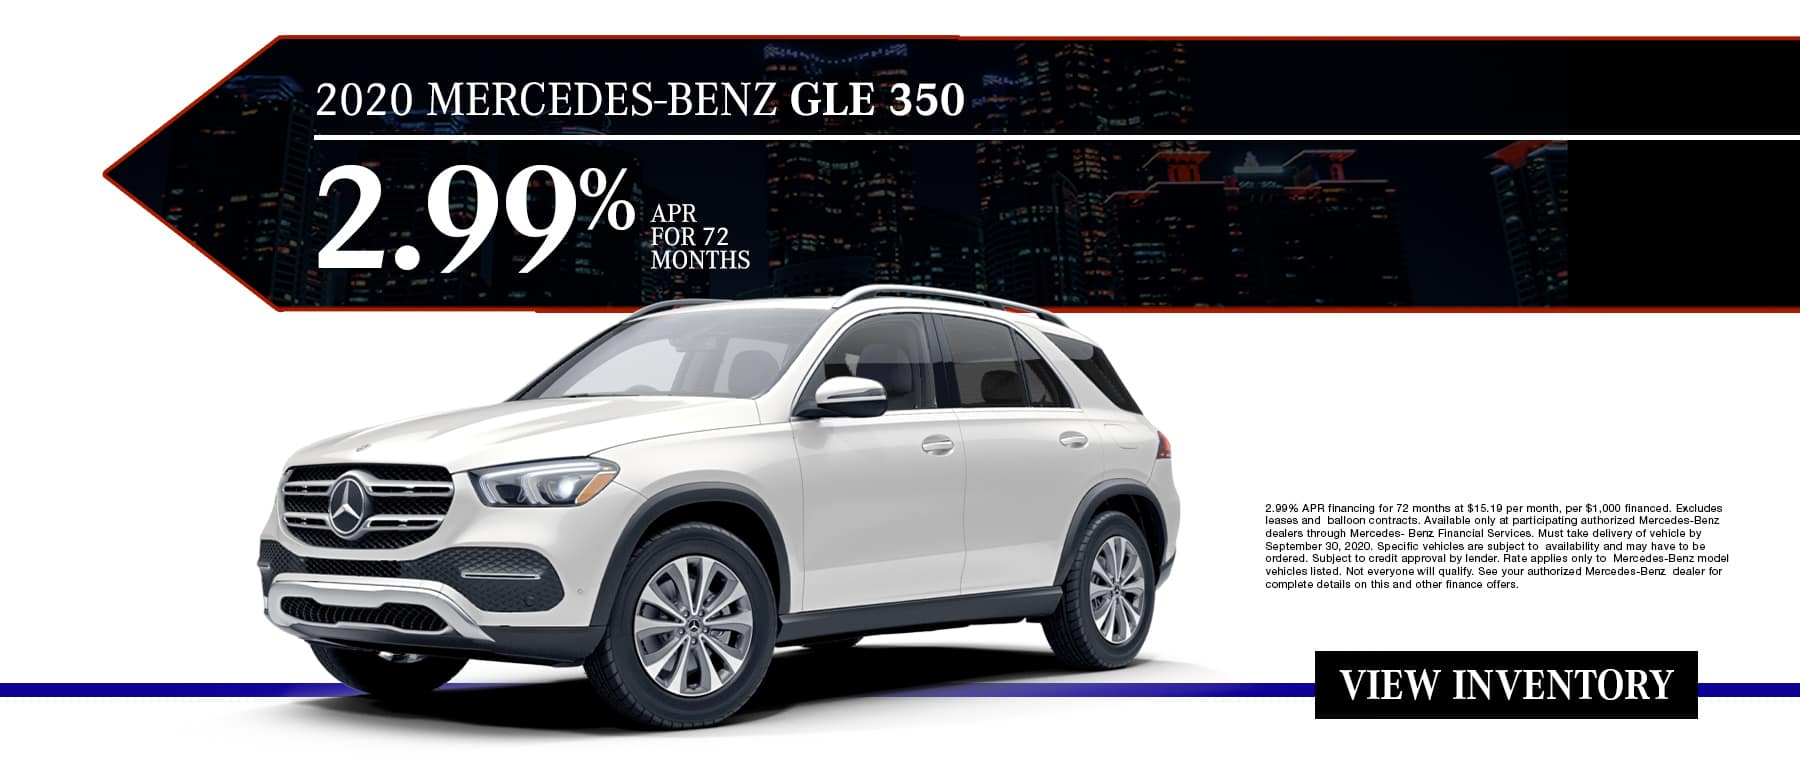 New 2020 Mercedes-Benz GLE 350 | 2.99% APR For 72 Months